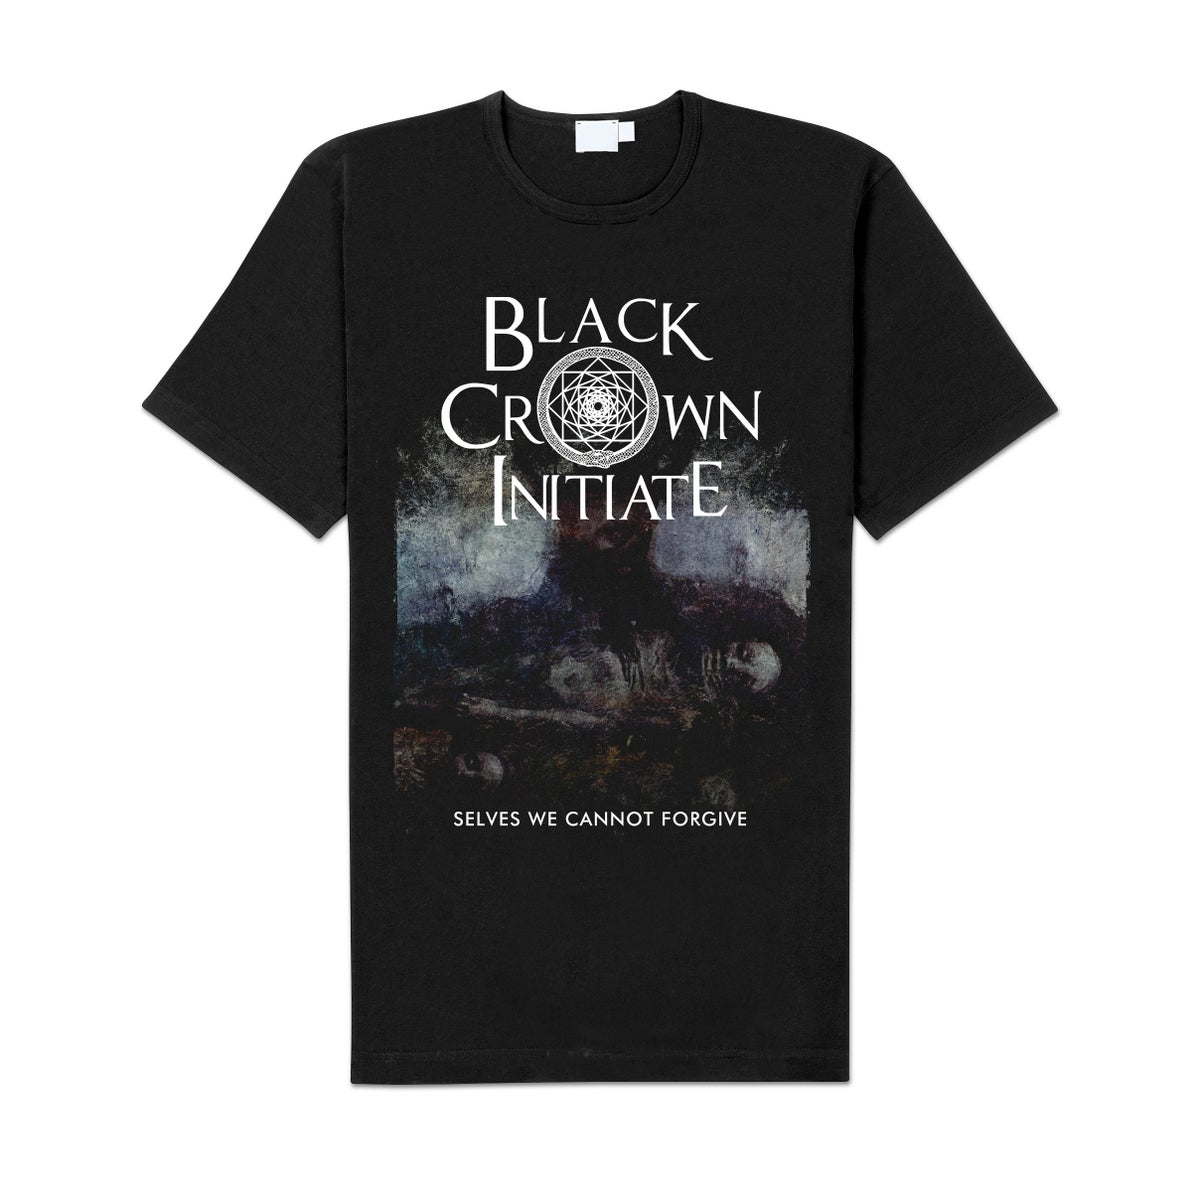 "Image of Black Crown Initiate ""Selves We Cannot Forgive"" Shirt"